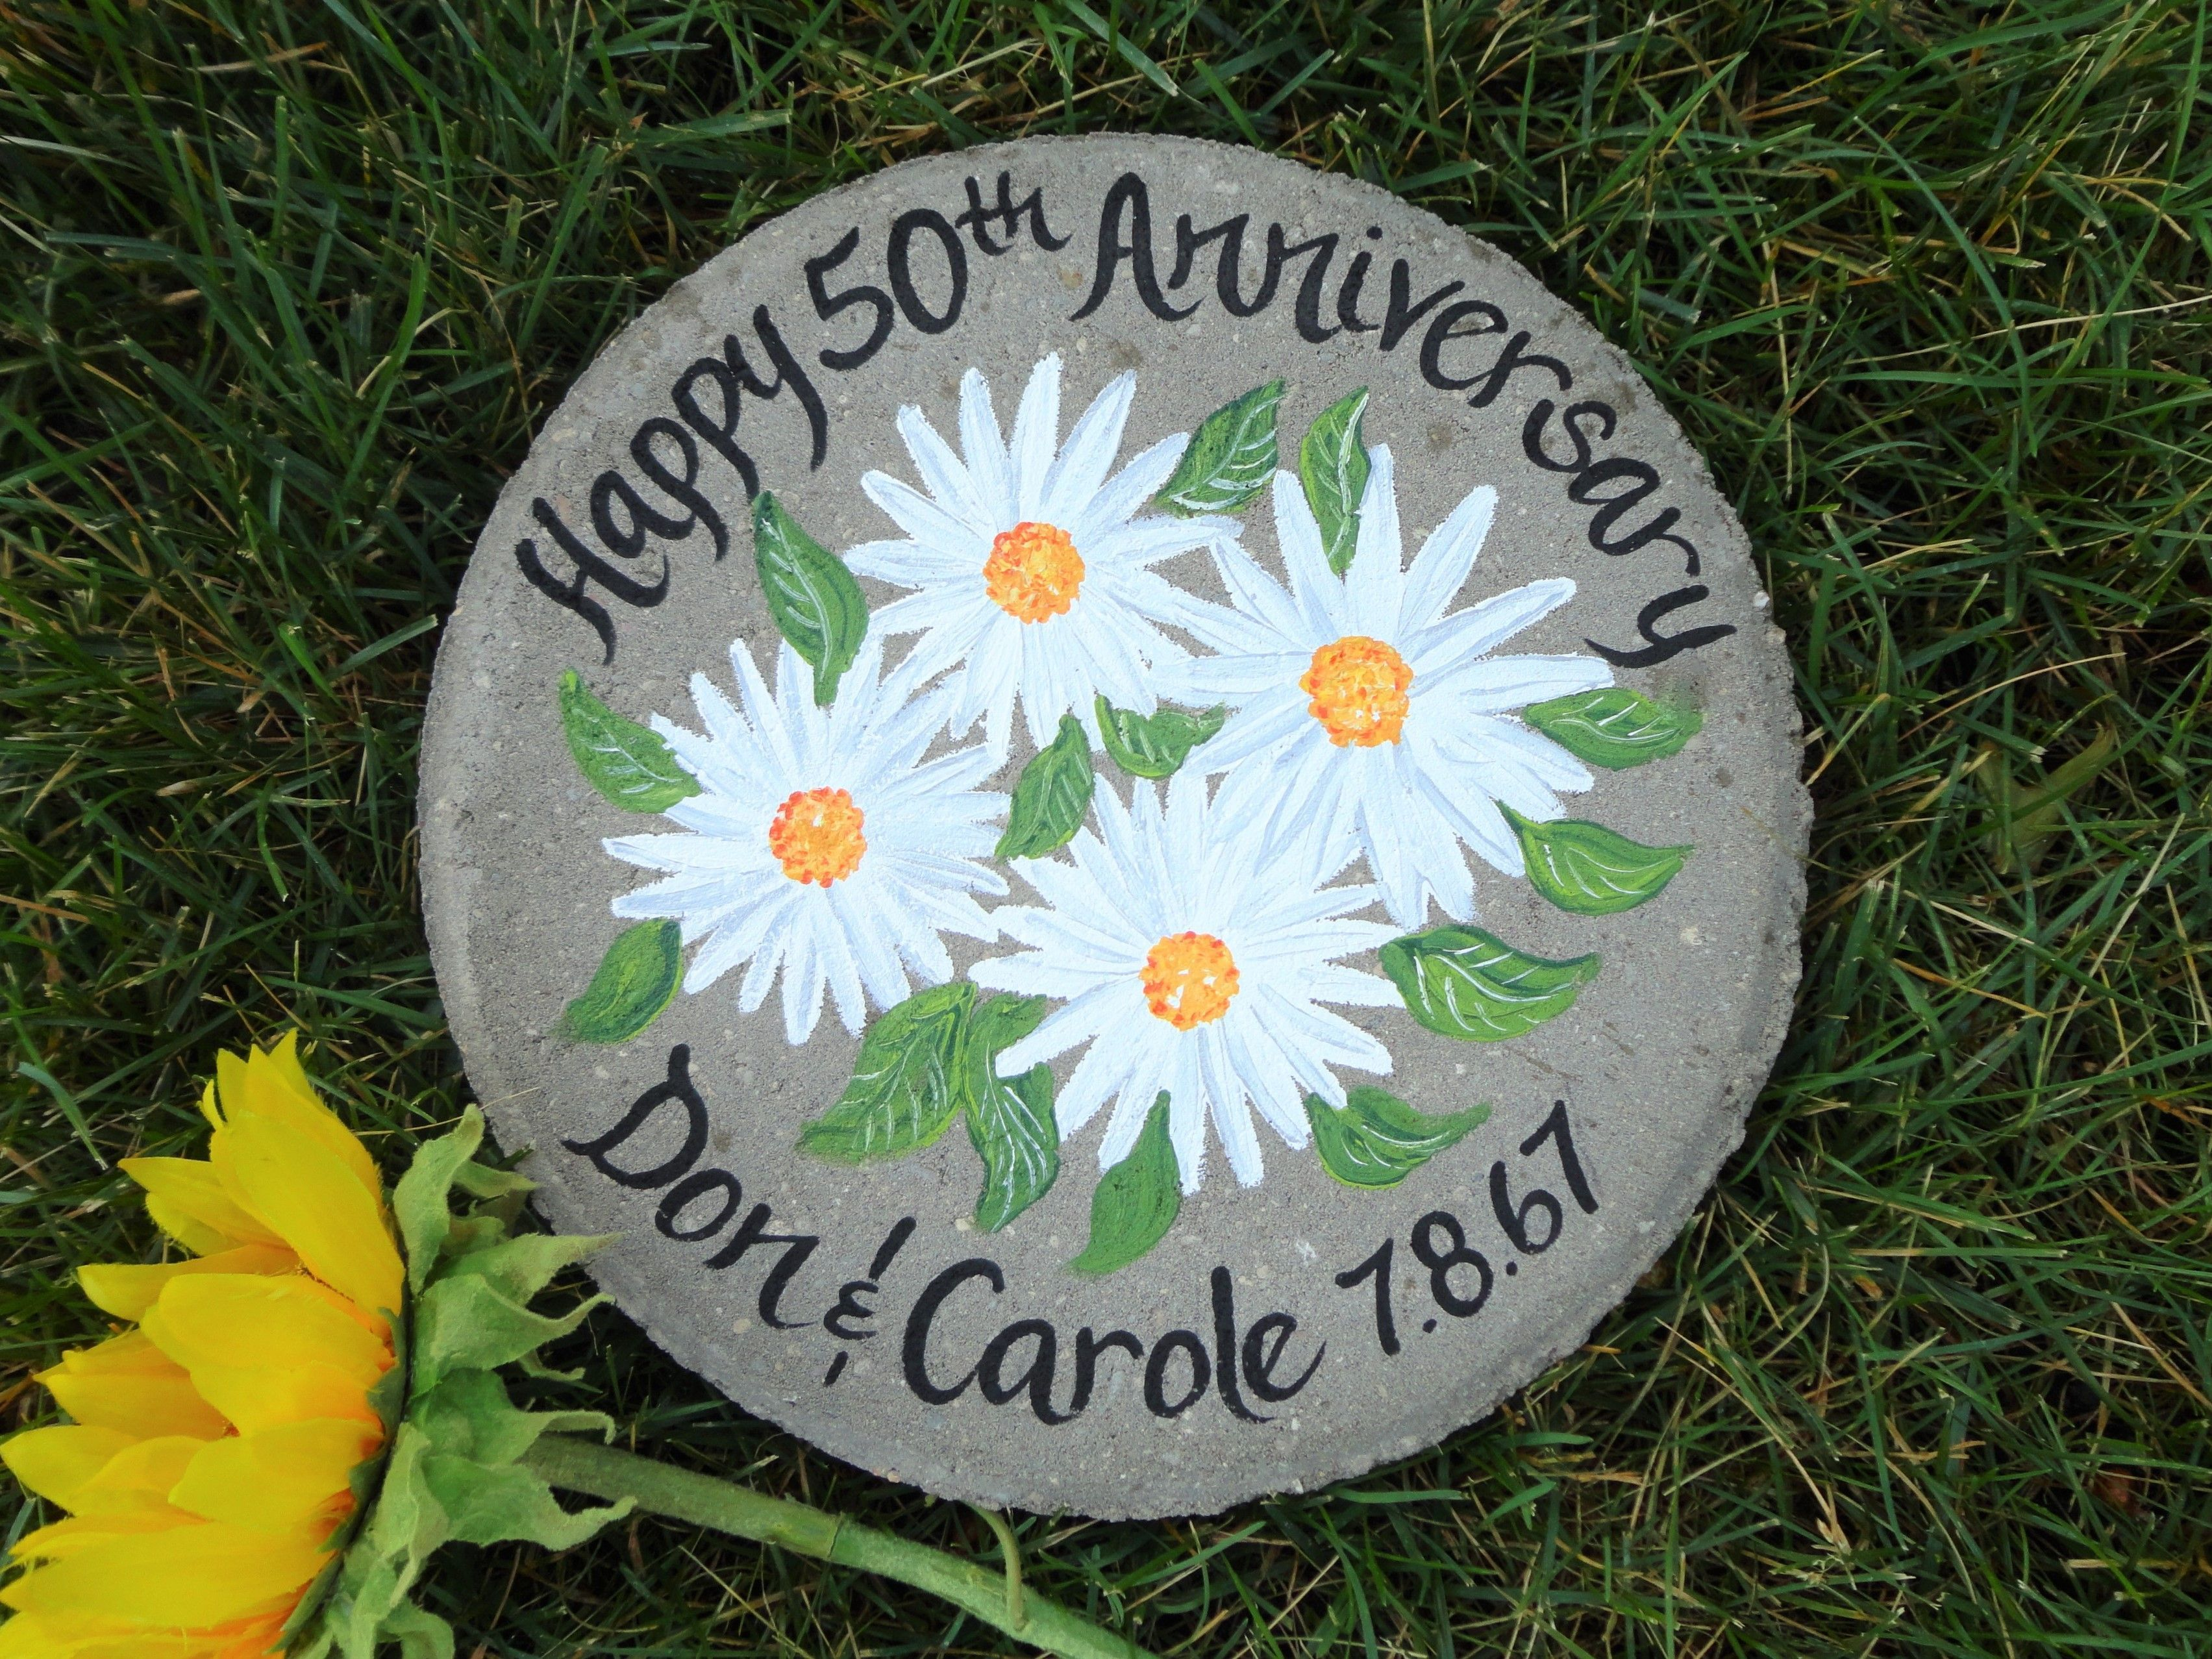 Daisy anniversary stone in 2020 bride and groom gifts